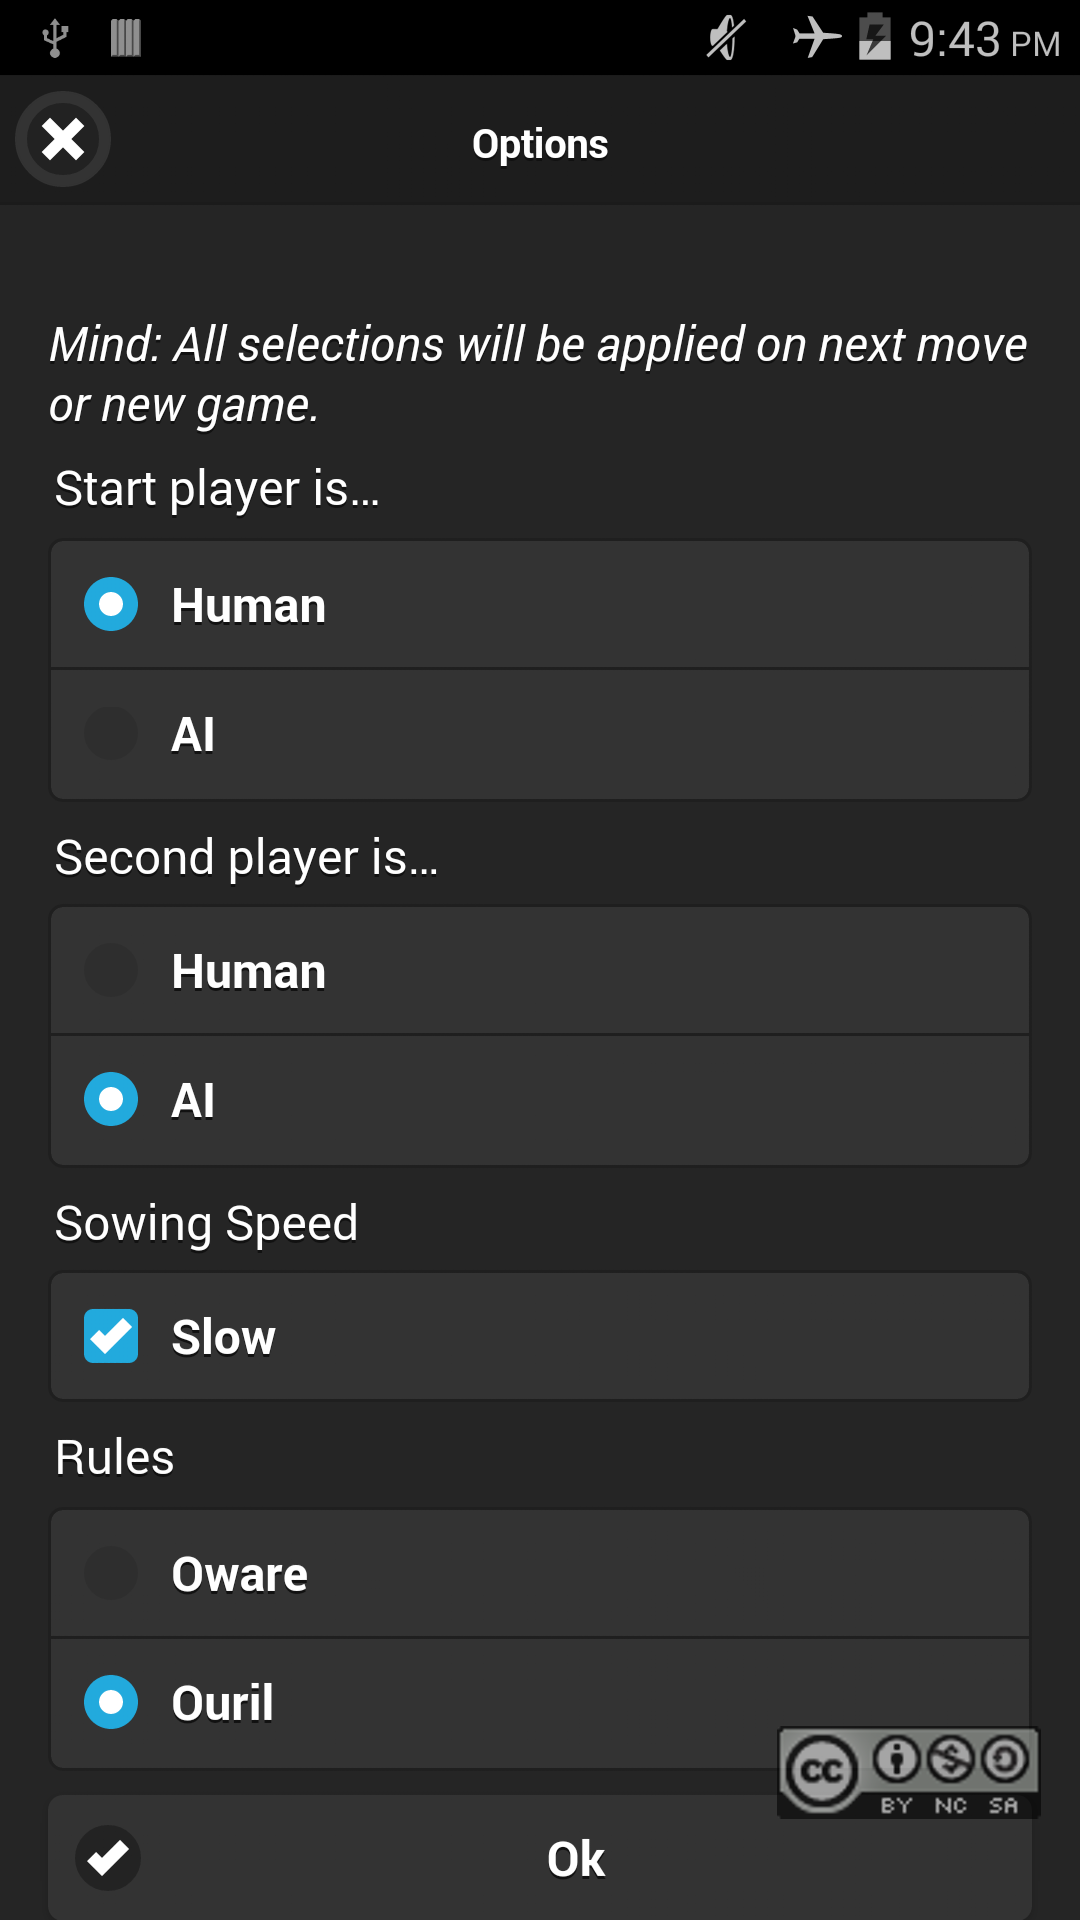 Switching to Ouril rules in options menu and select the AI MCTS computer player, own work, Oliver Merkel, Creative Commons License, This work is licensed under a Creative Commons Attribution-NonCommercial-ShareAlike 4.0 International License.